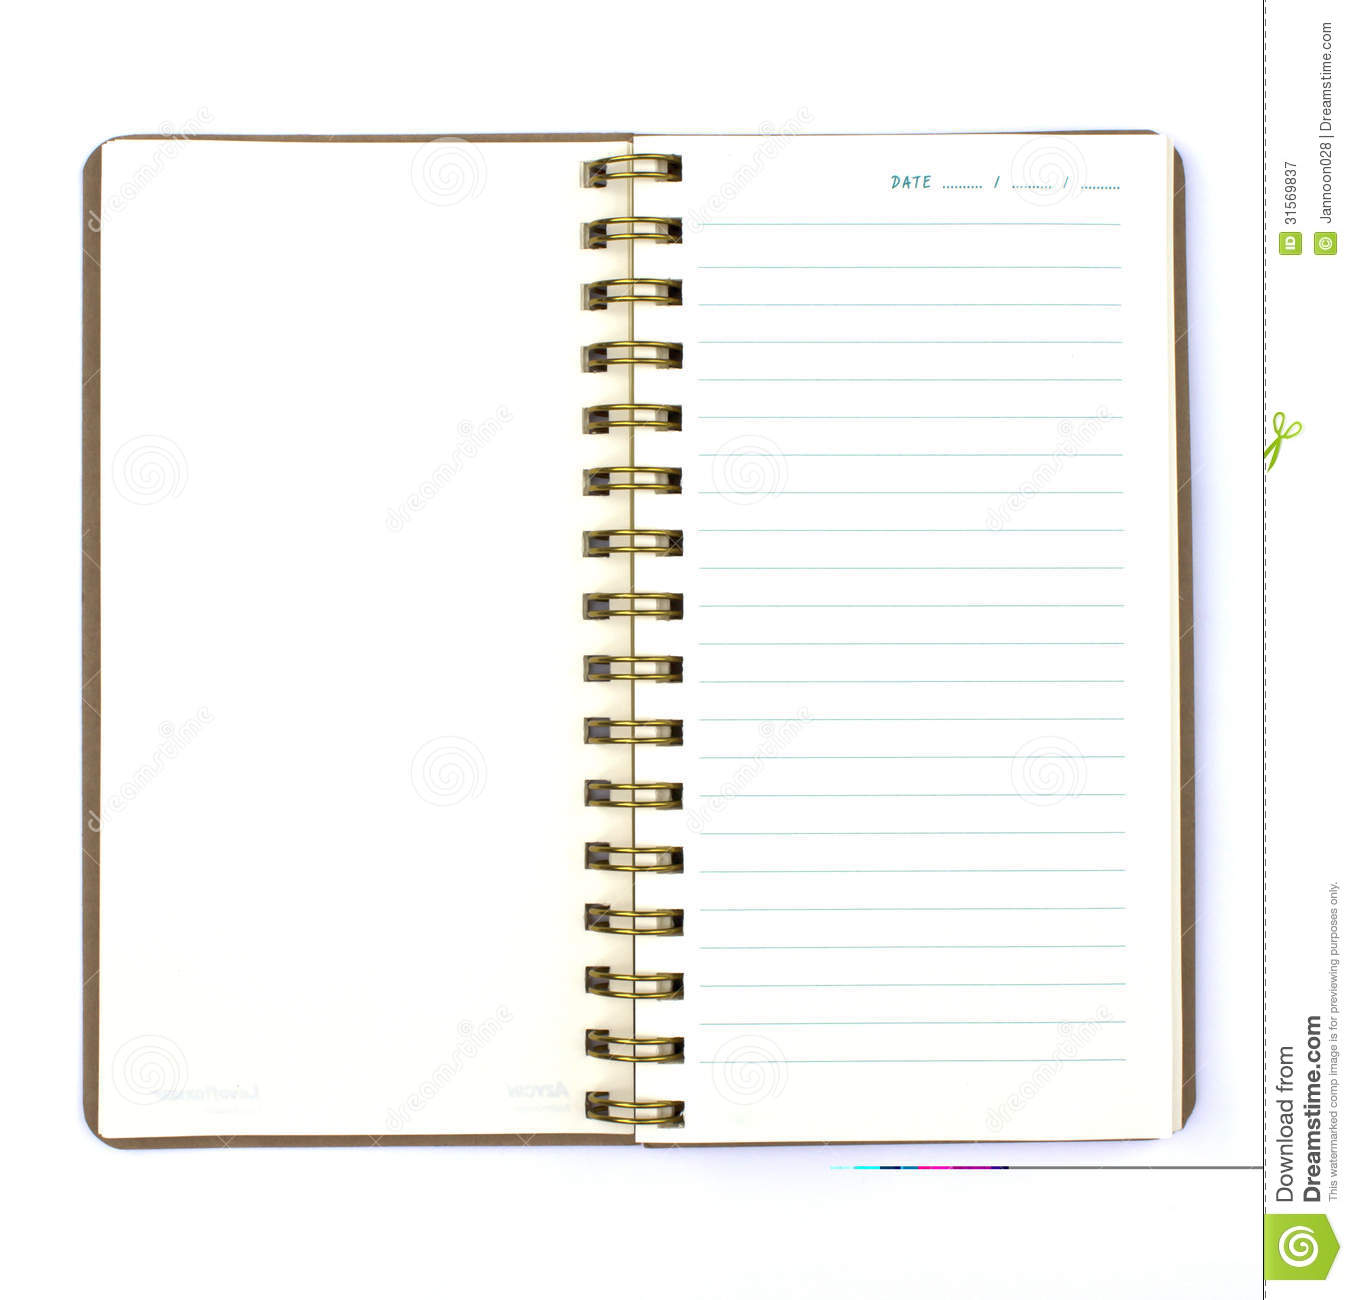 S note background image - Background Blank Book Diary Isolated Note